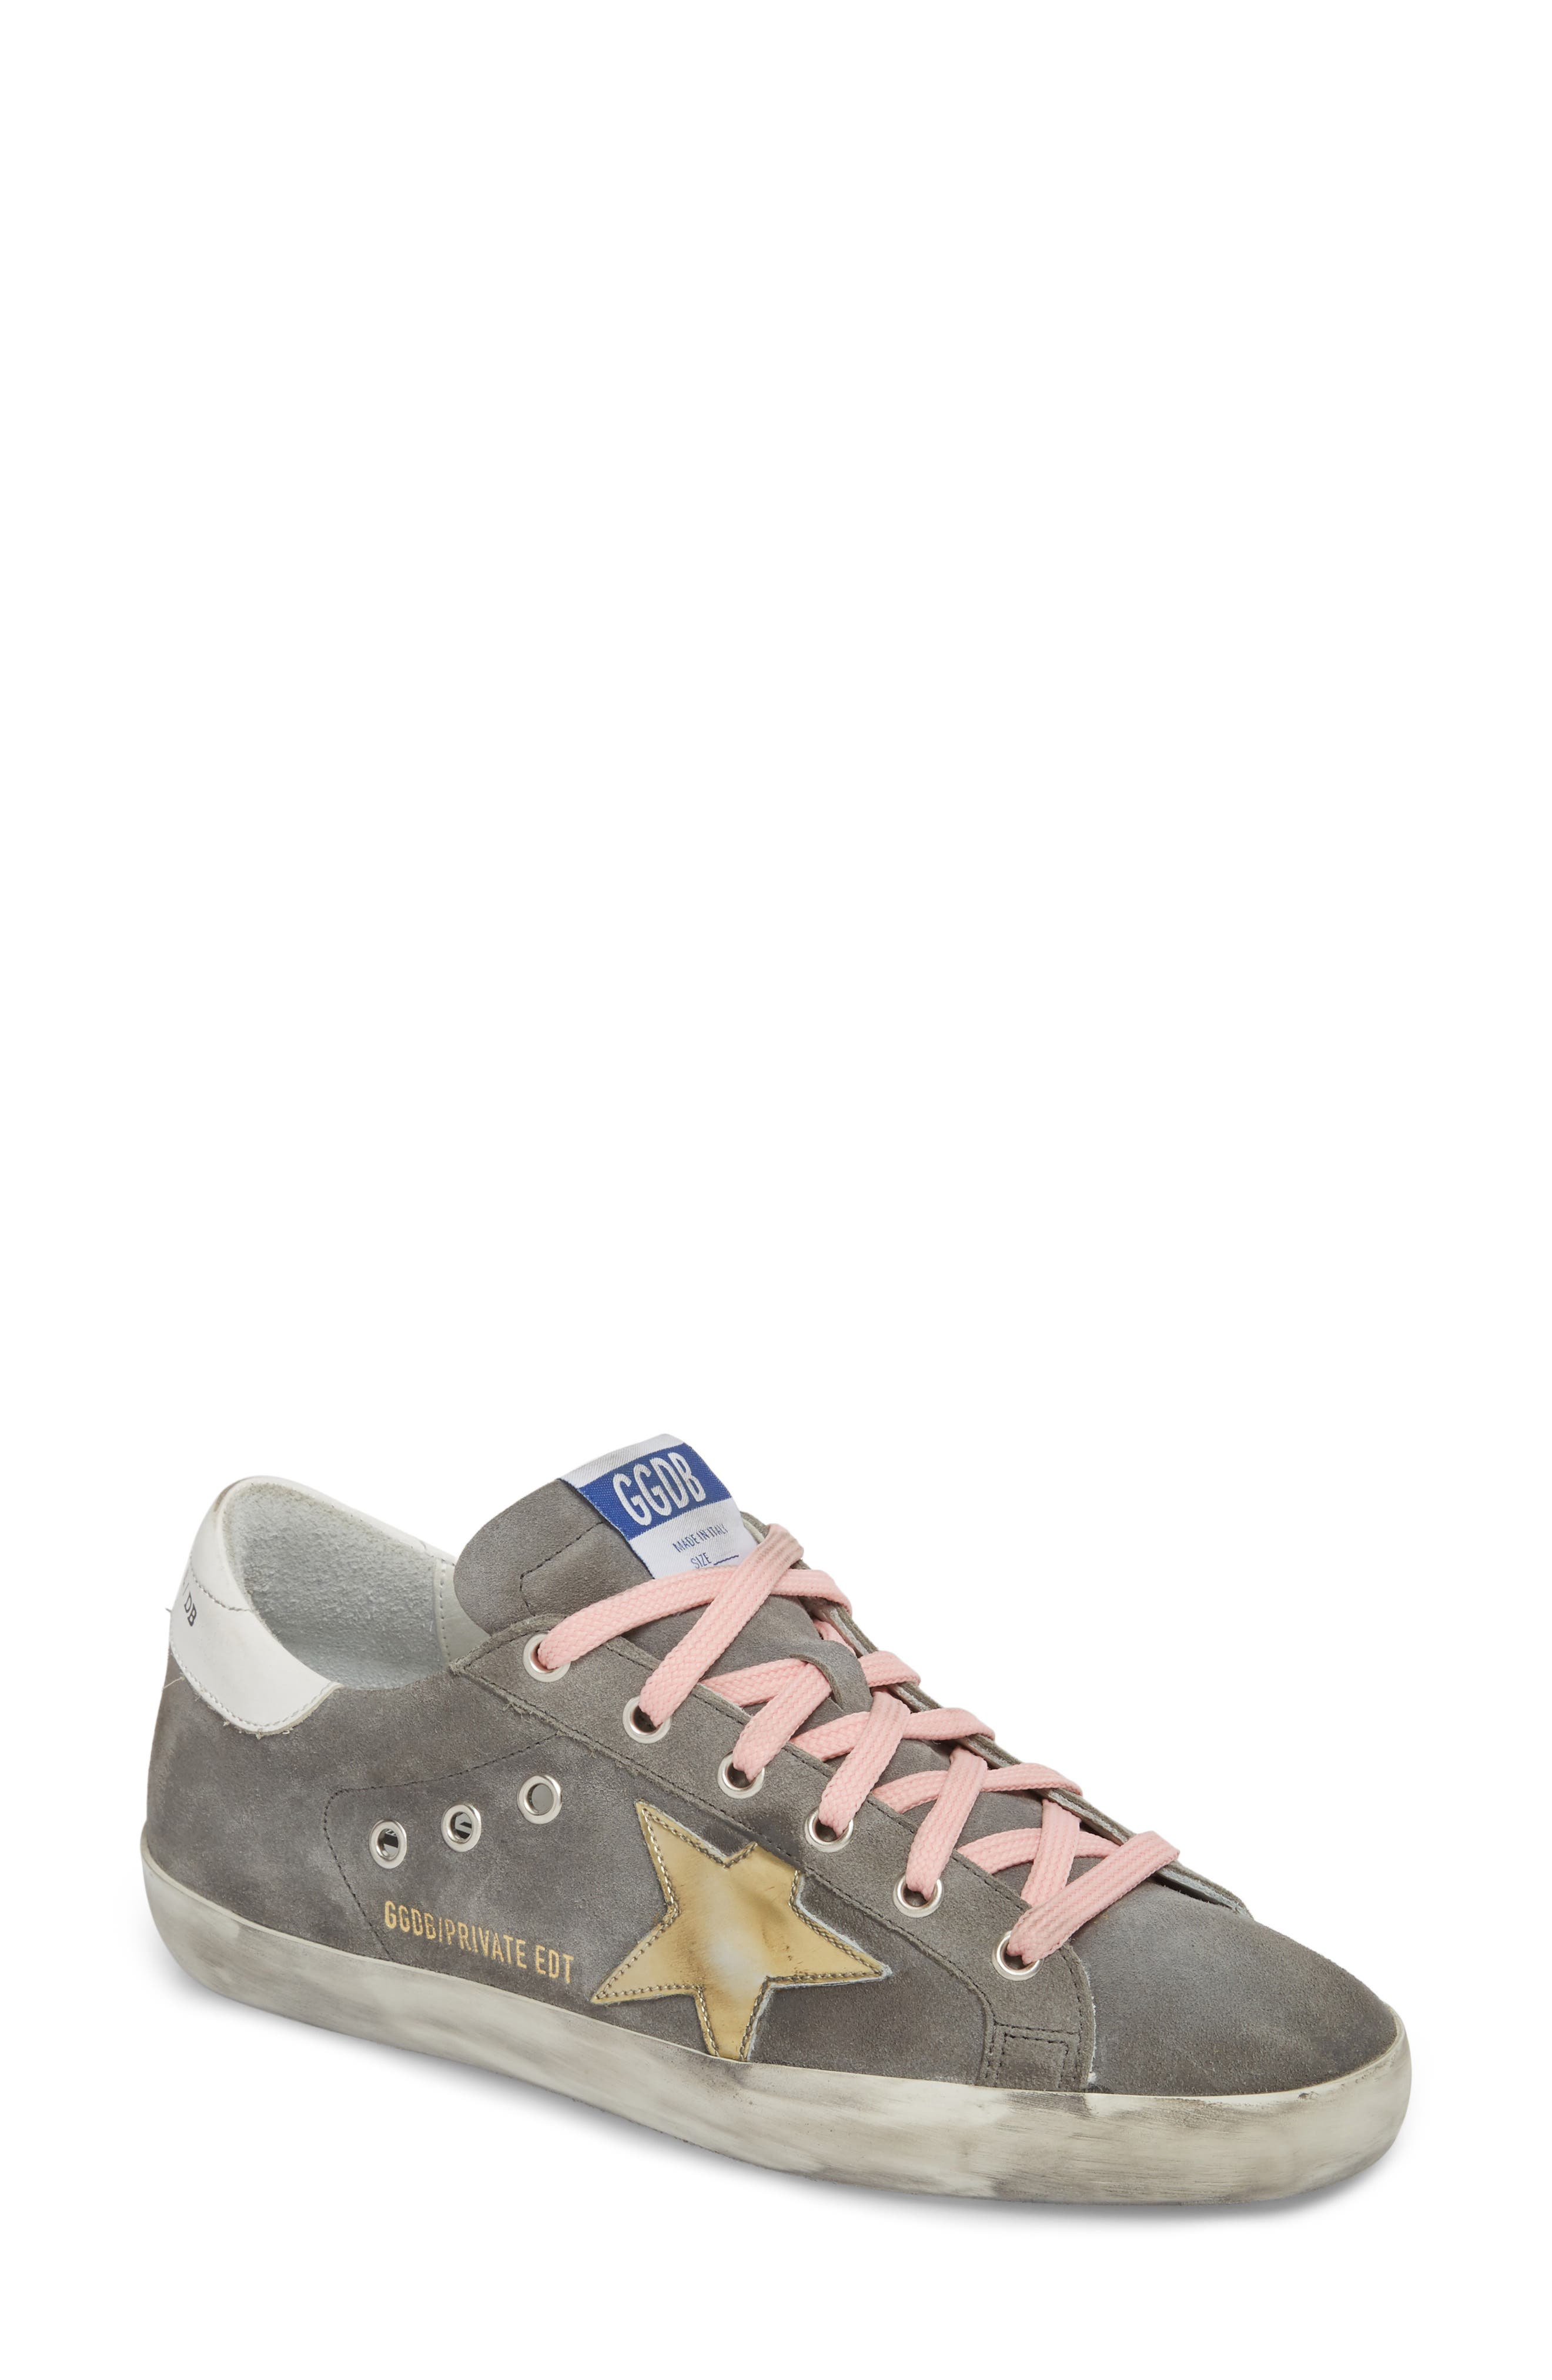 2d24e3b13e Acquista golden goose junior shop online - OFF64% sconti